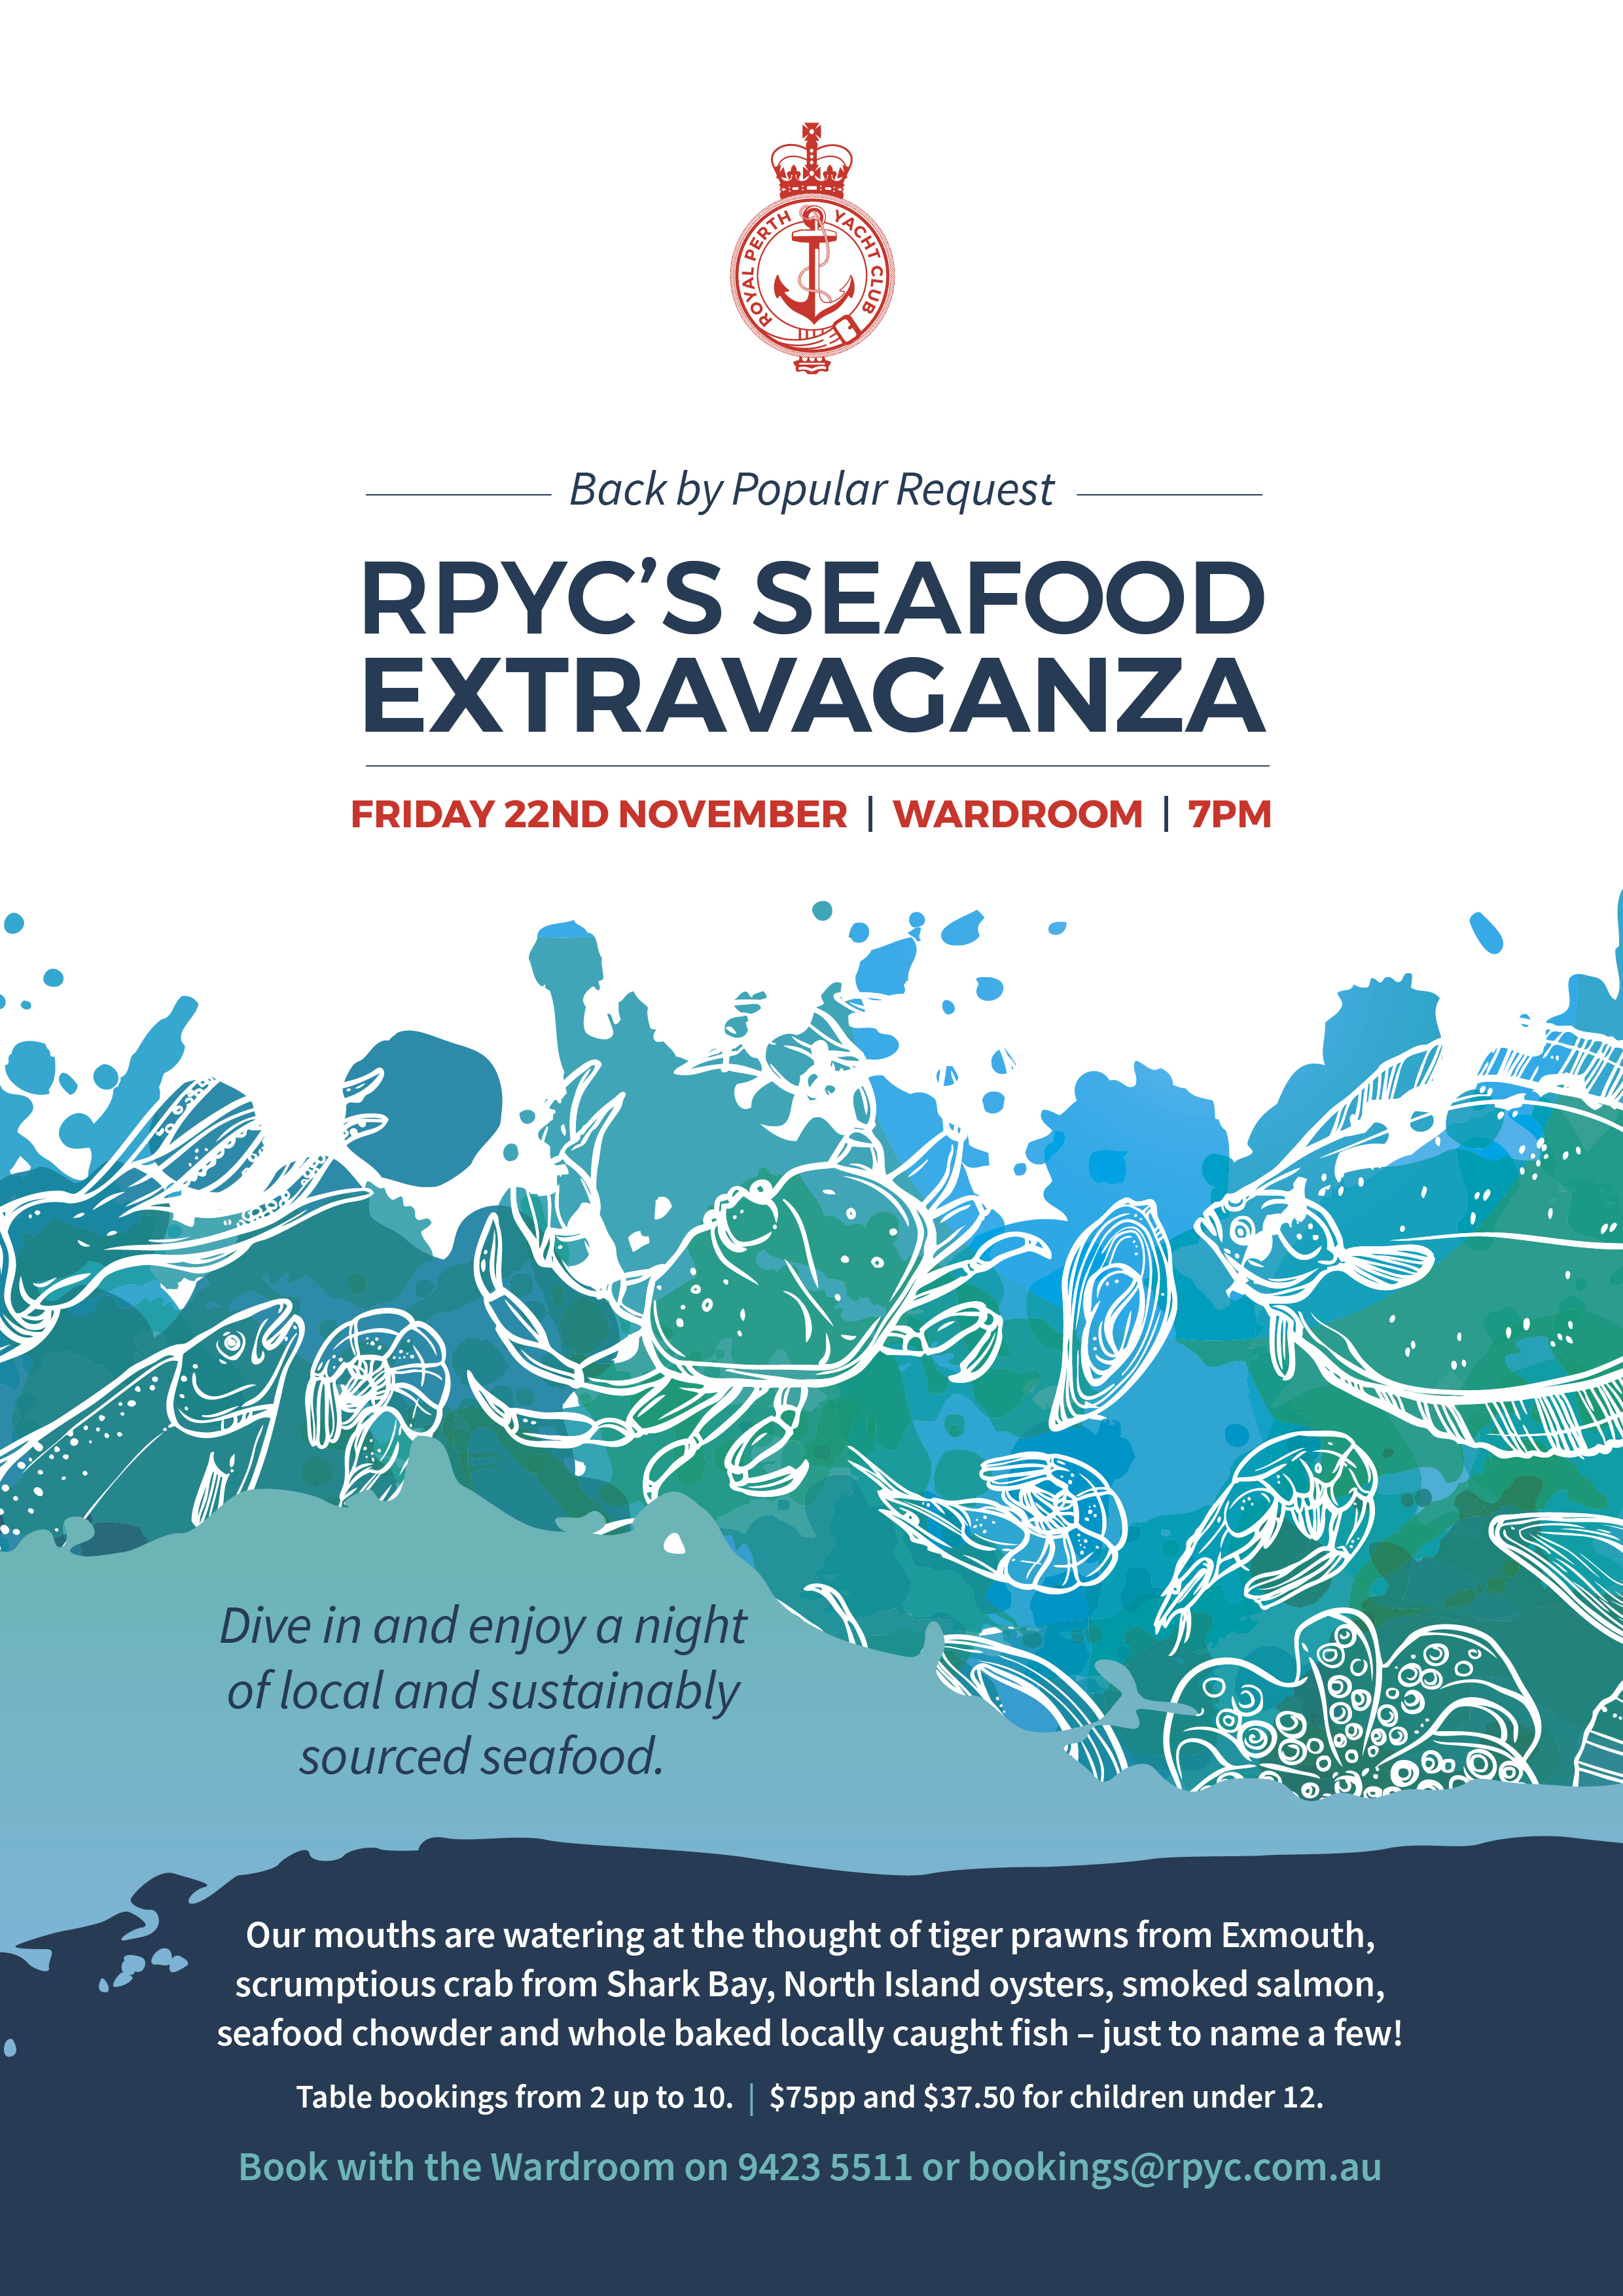 RPYC Seafood Extravaganza A4 Poster 2019 HR